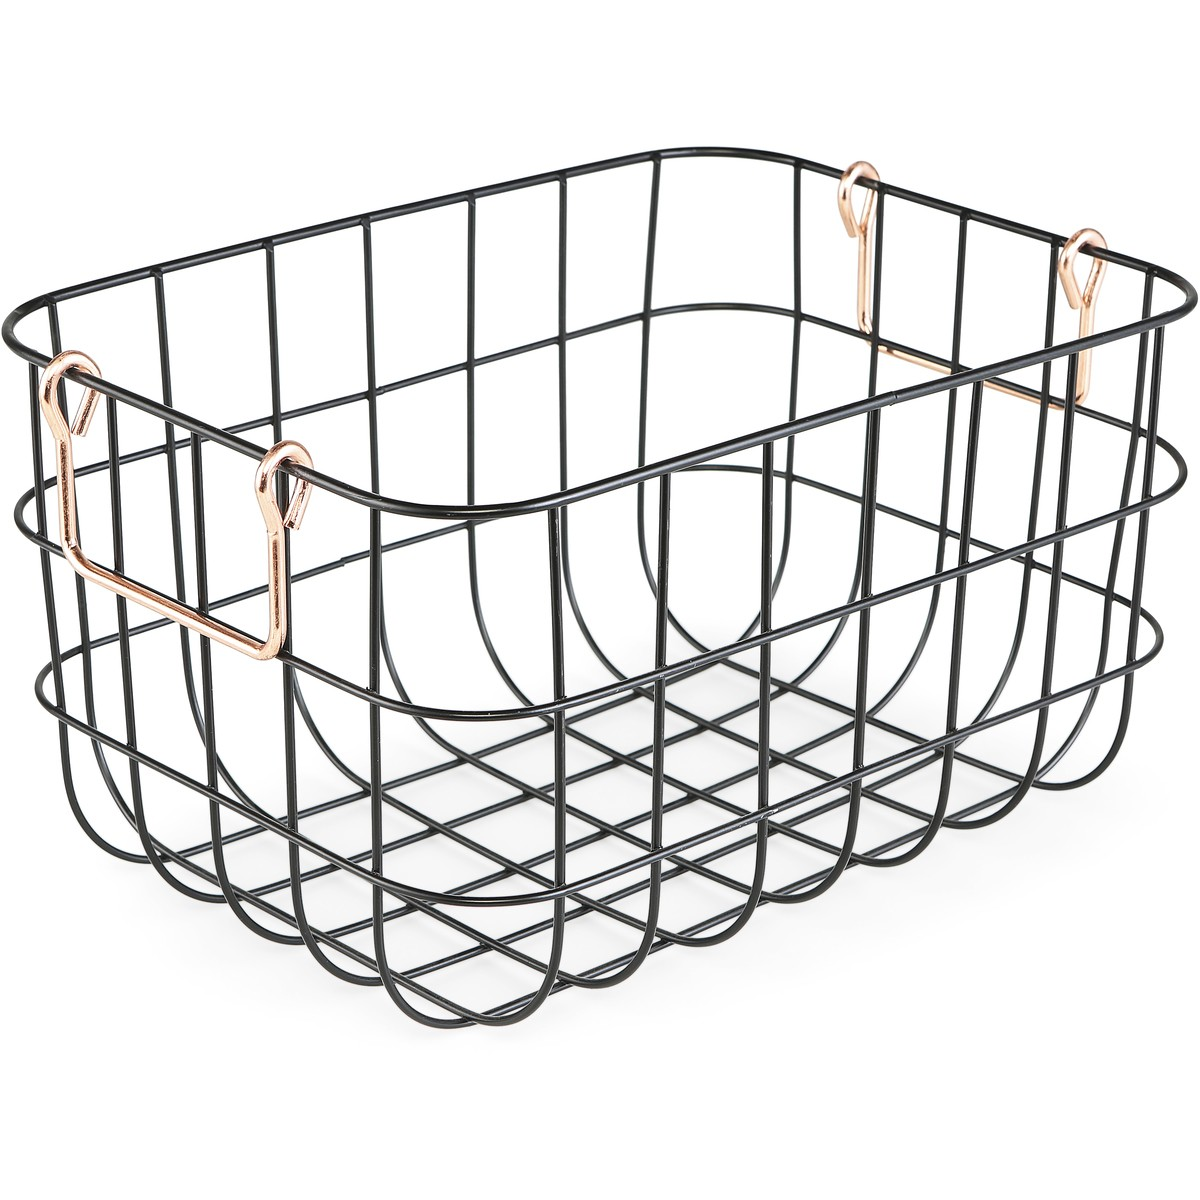 House Amp Home Wire Basket With Copper Handle